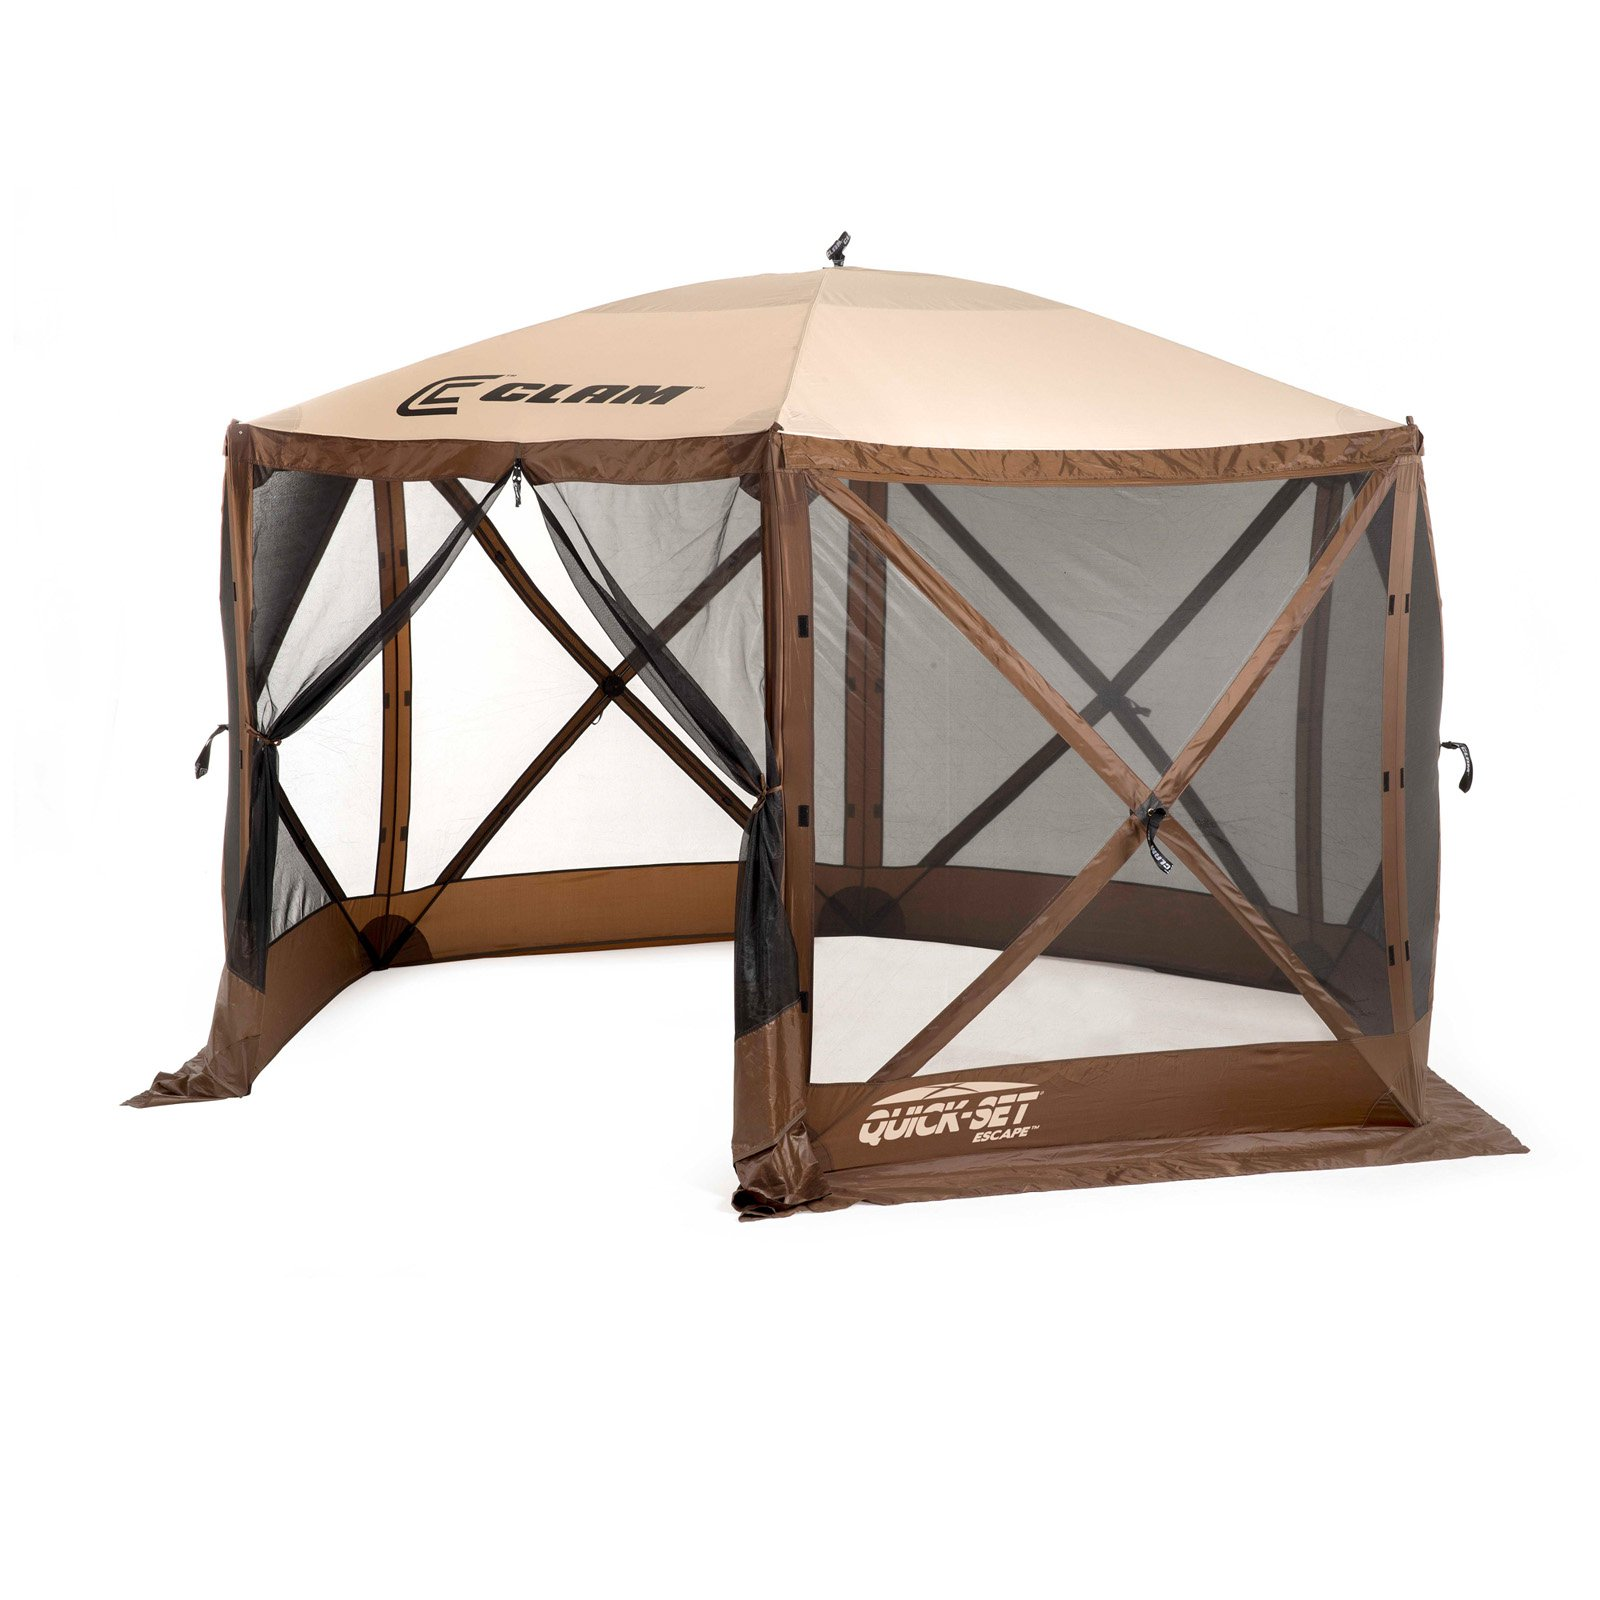 Clam Quick-Set Escape Screen Canopy Shelter by Quick-Set